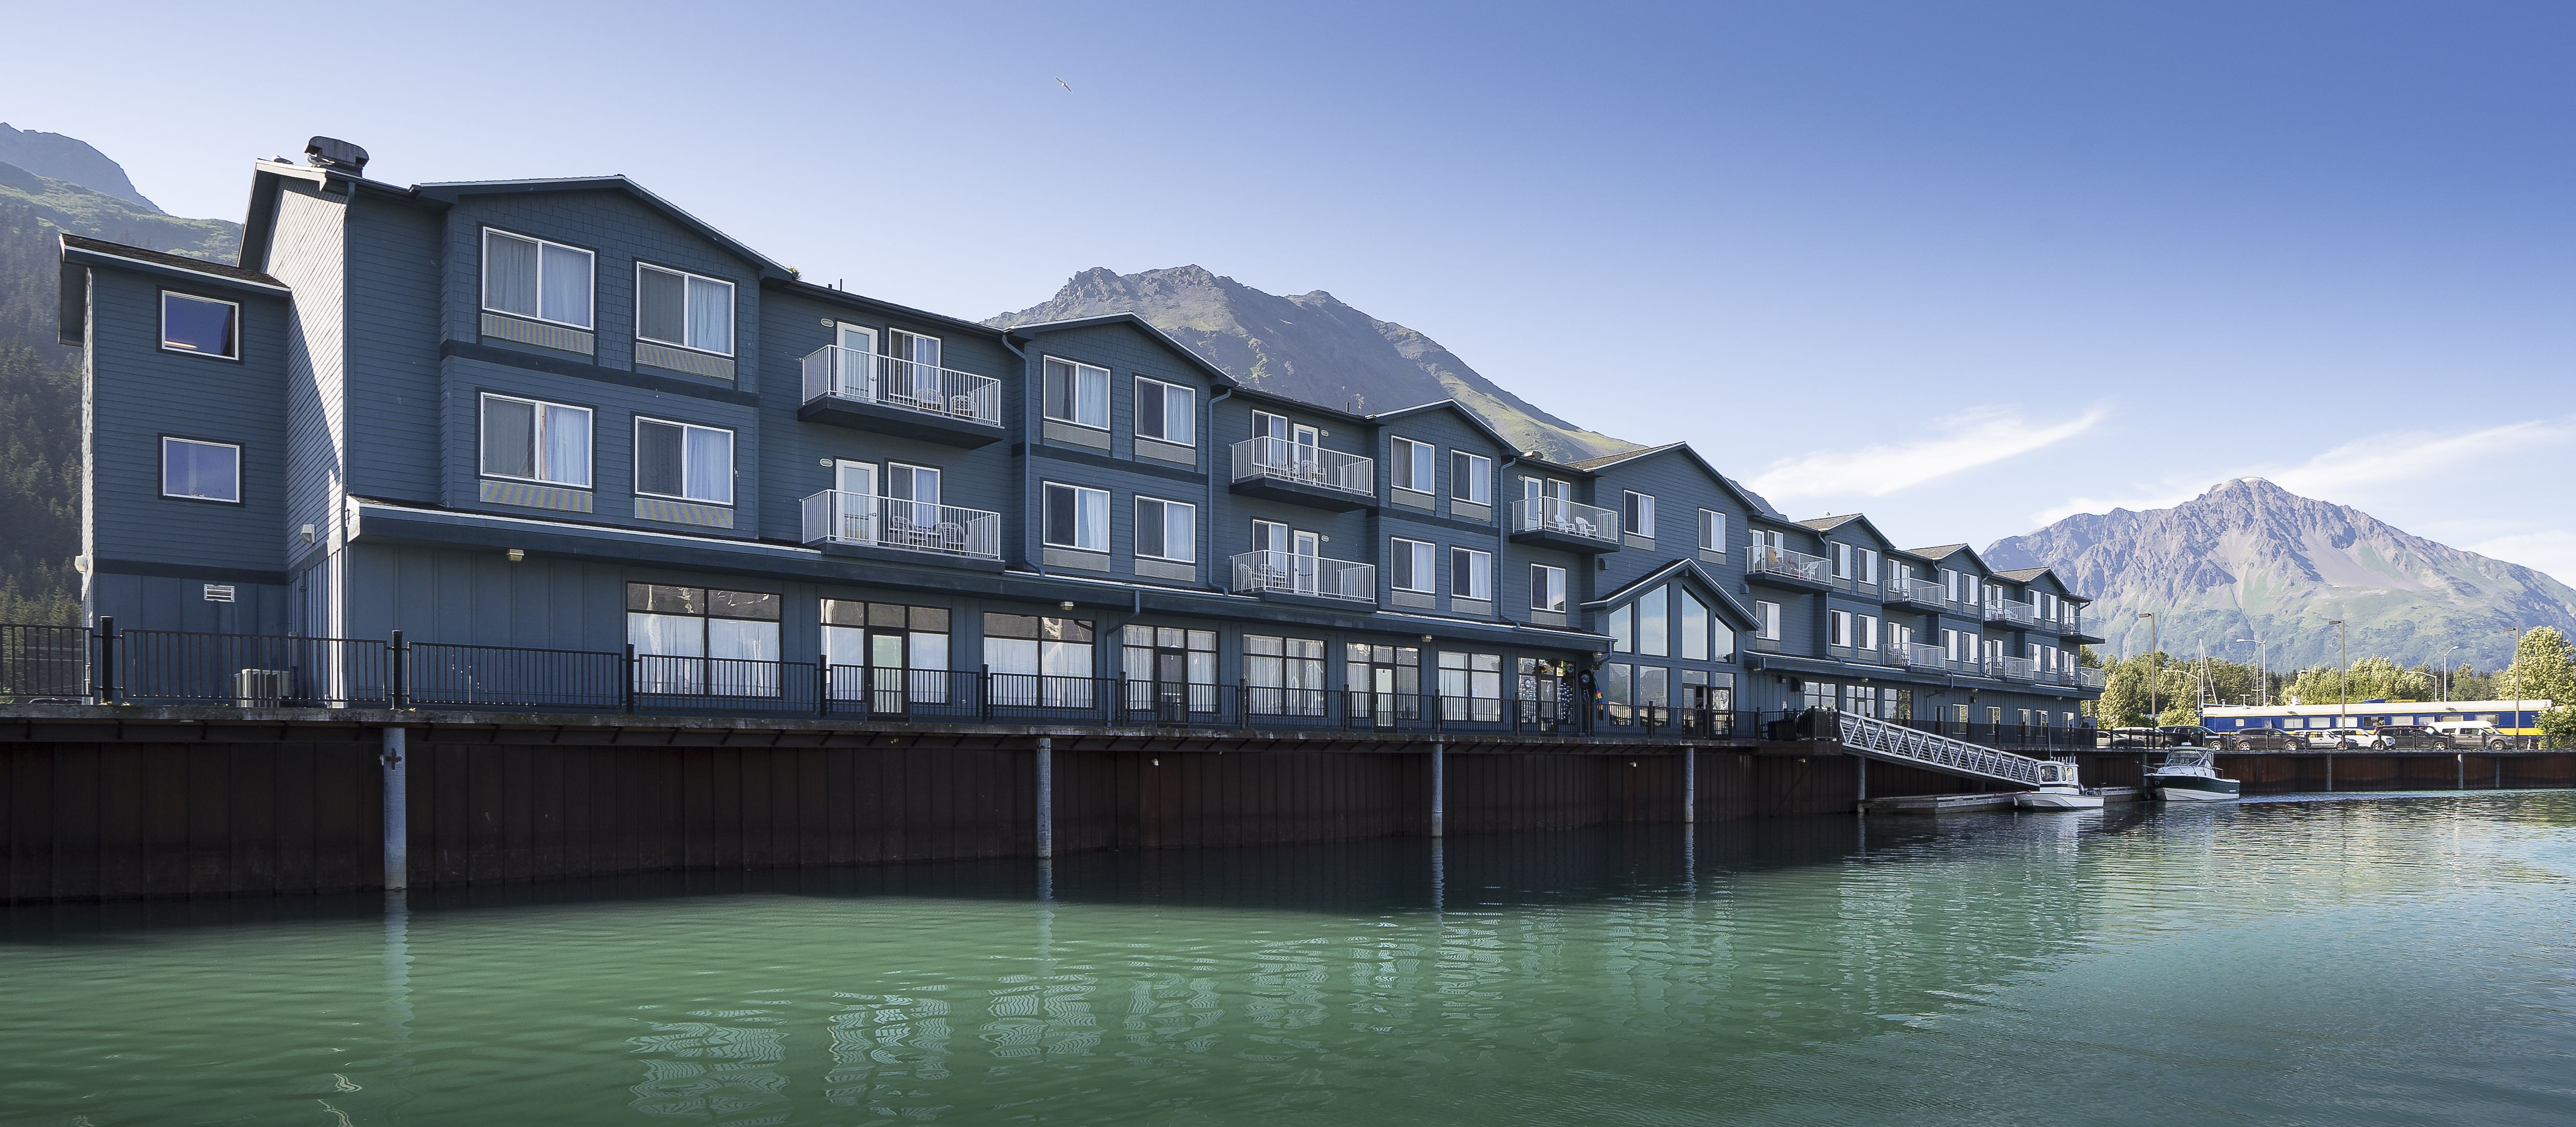 Harbor 360 Hotel is the premier waterfront hotel in Seward